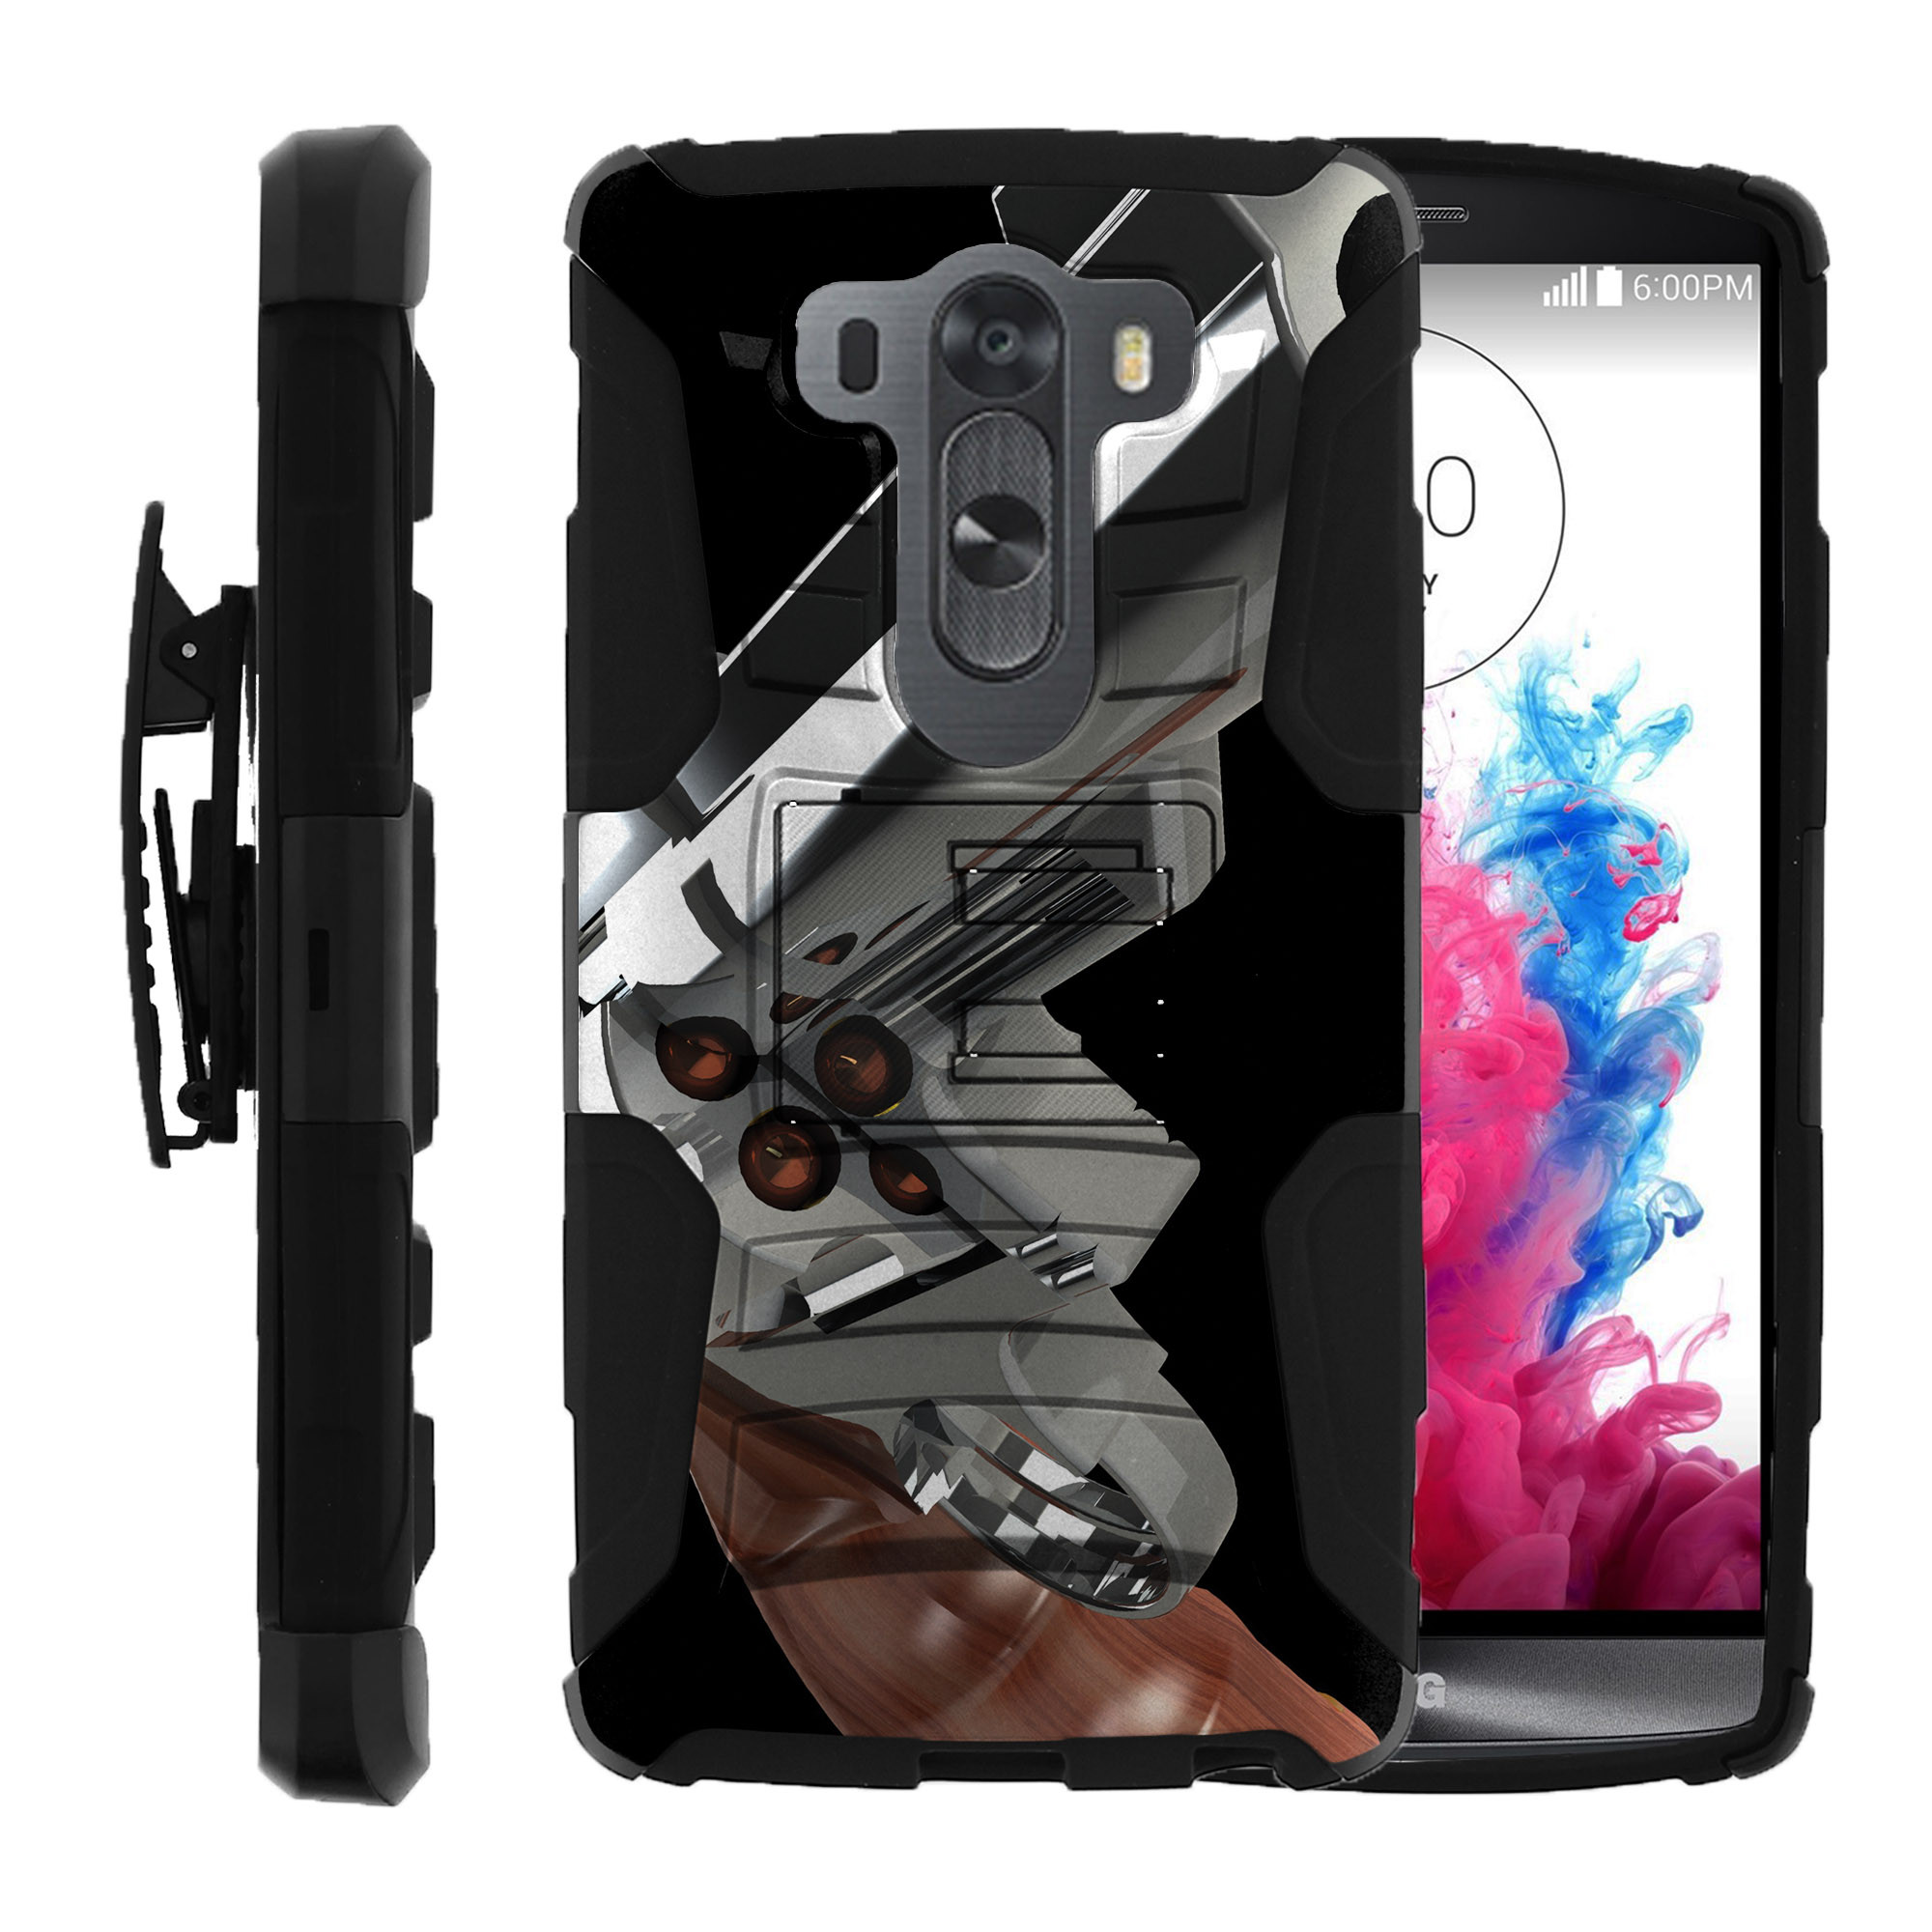 LG V10 and LG G4 PRO Miniturtle® Clip Armor Dual Layer Case Rugged Exterior with Built in Kickstand + Holster - Trigger and Target